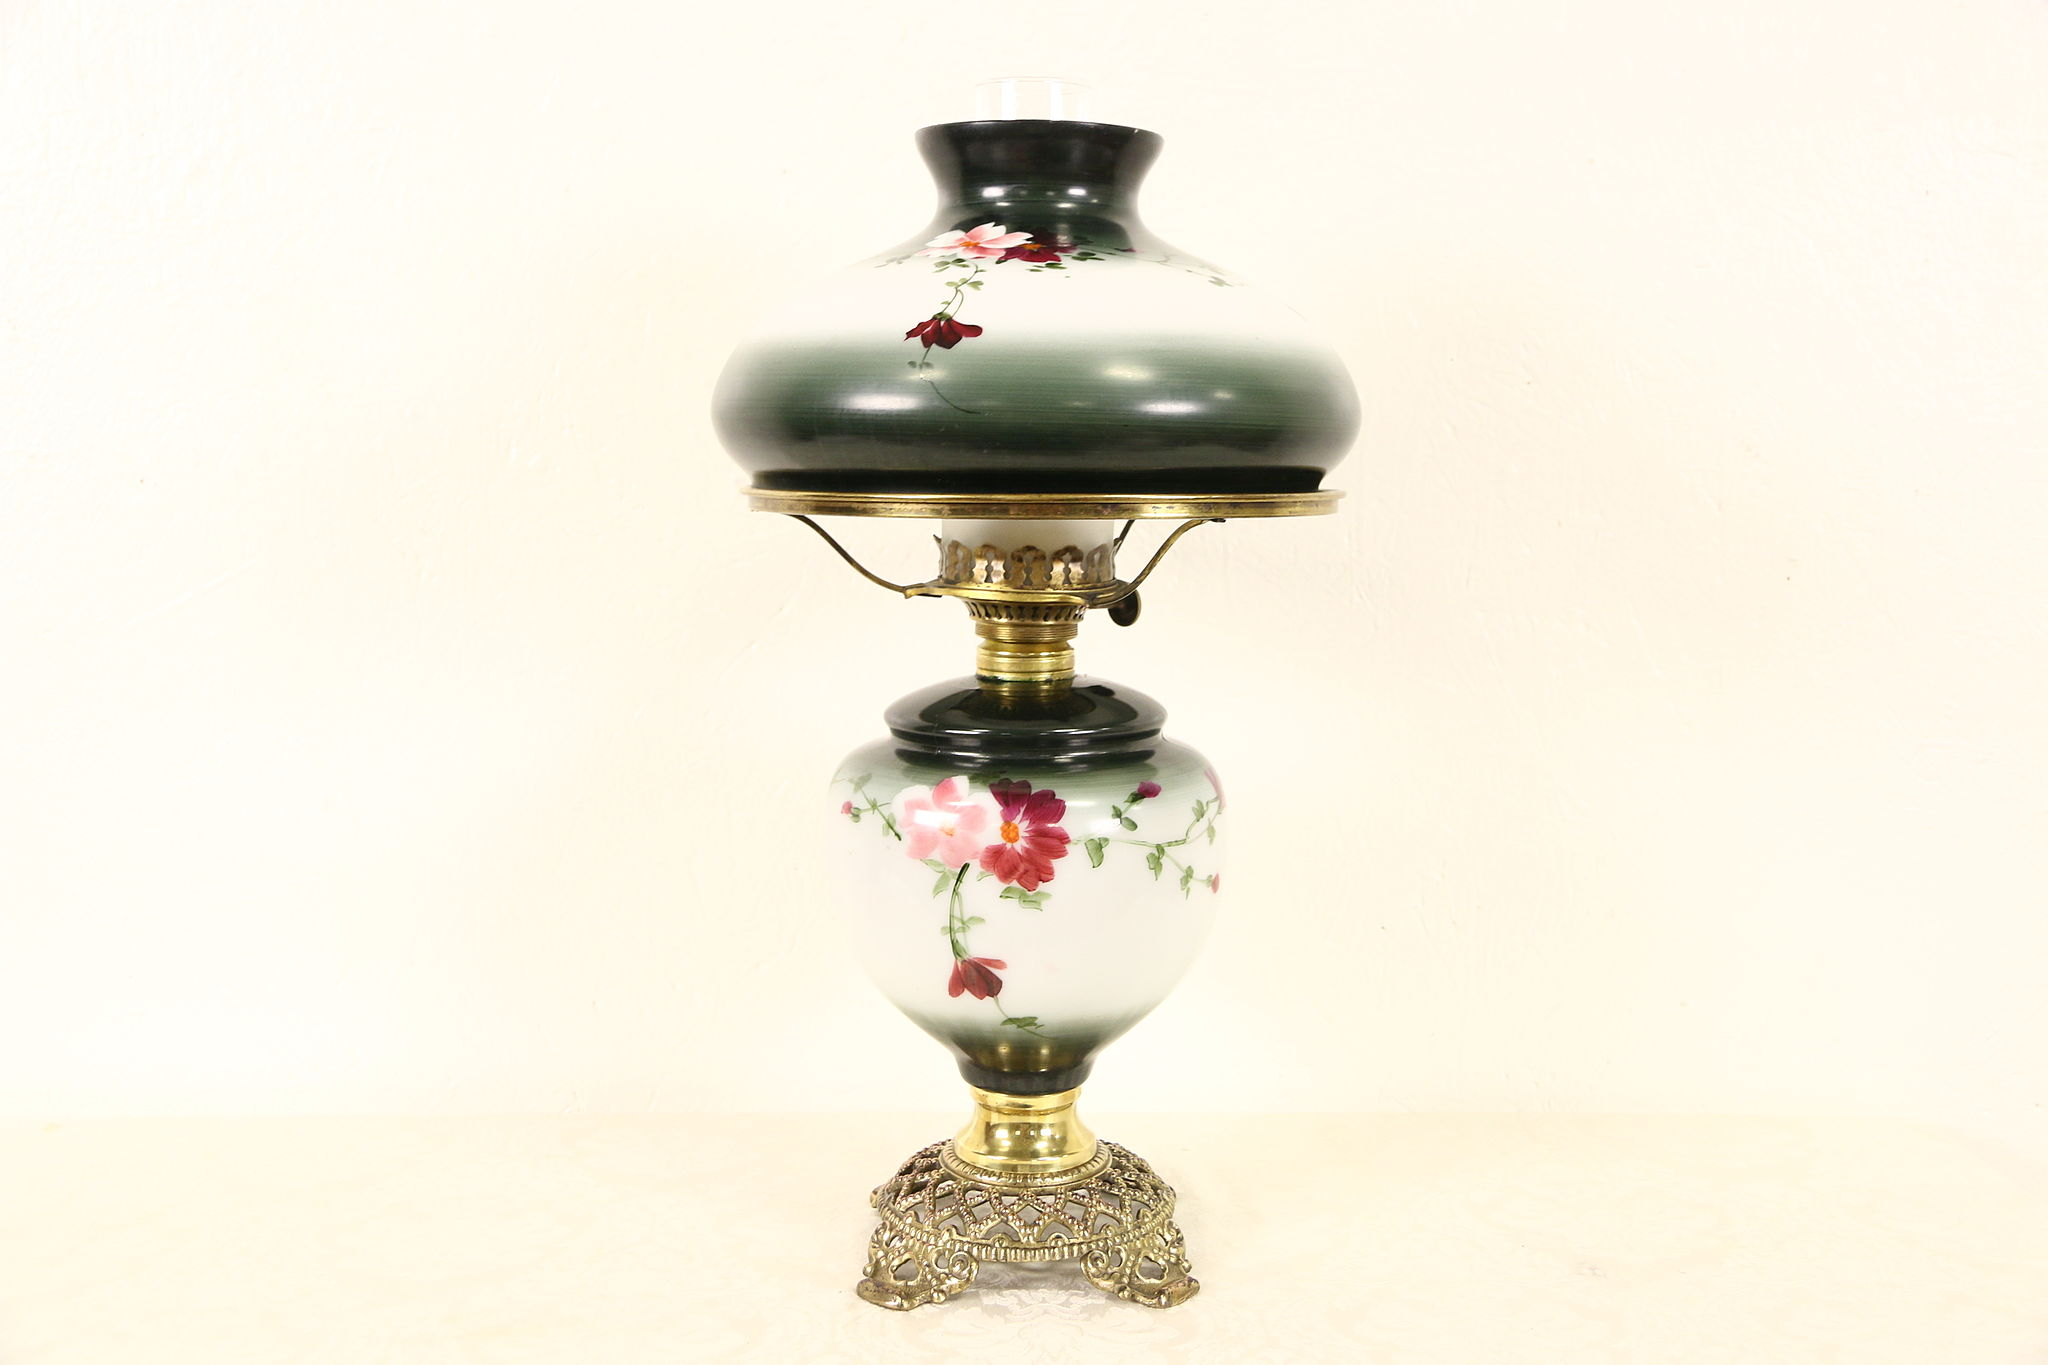 Modern Kerosene Lamp Hand Painted 1890 S Antique Kerosene Lamp Painted Shade Brass Mounts